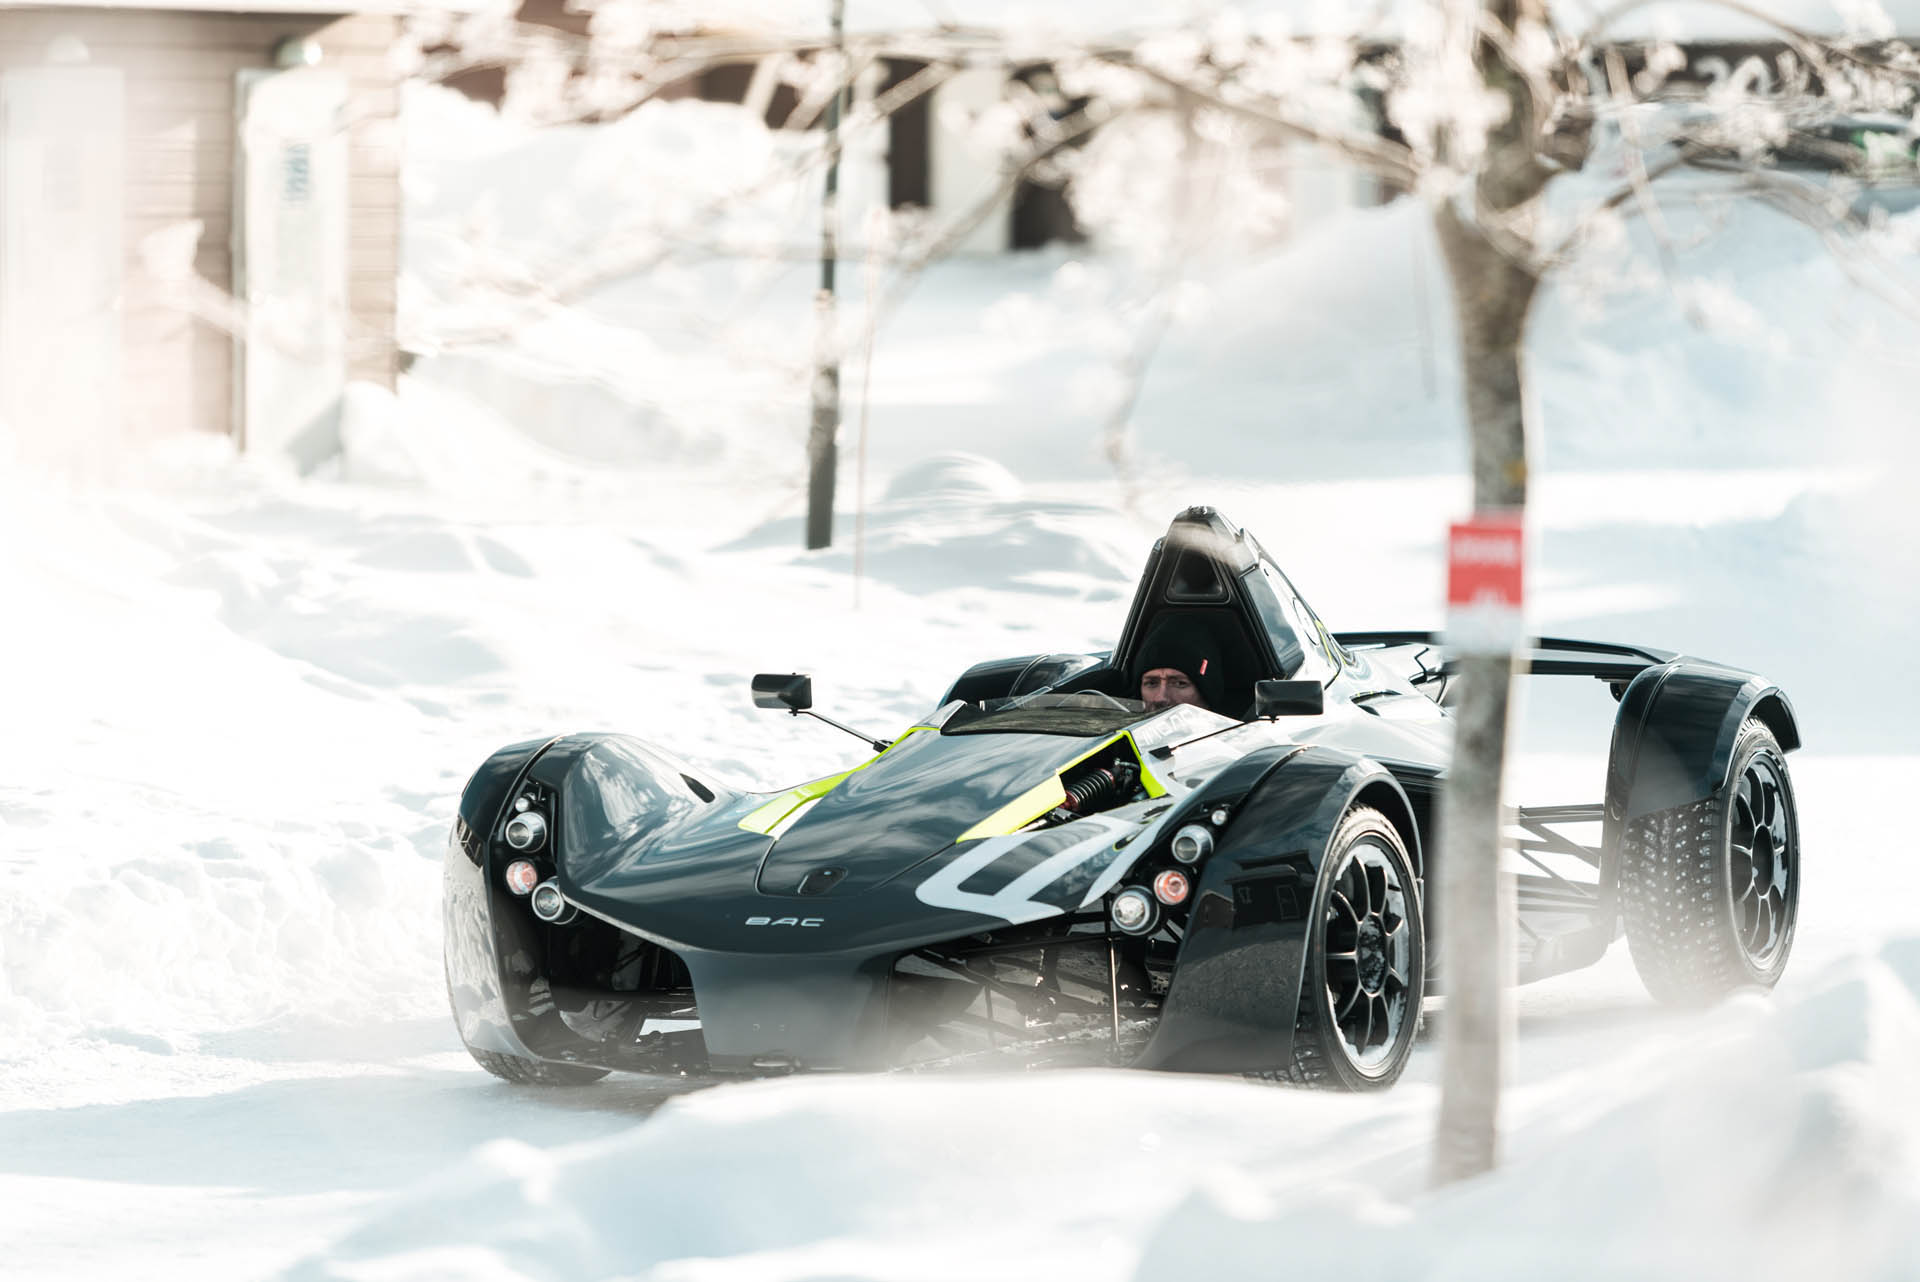 BAC_Mono_Ice_Driving_Experience_2018_0004